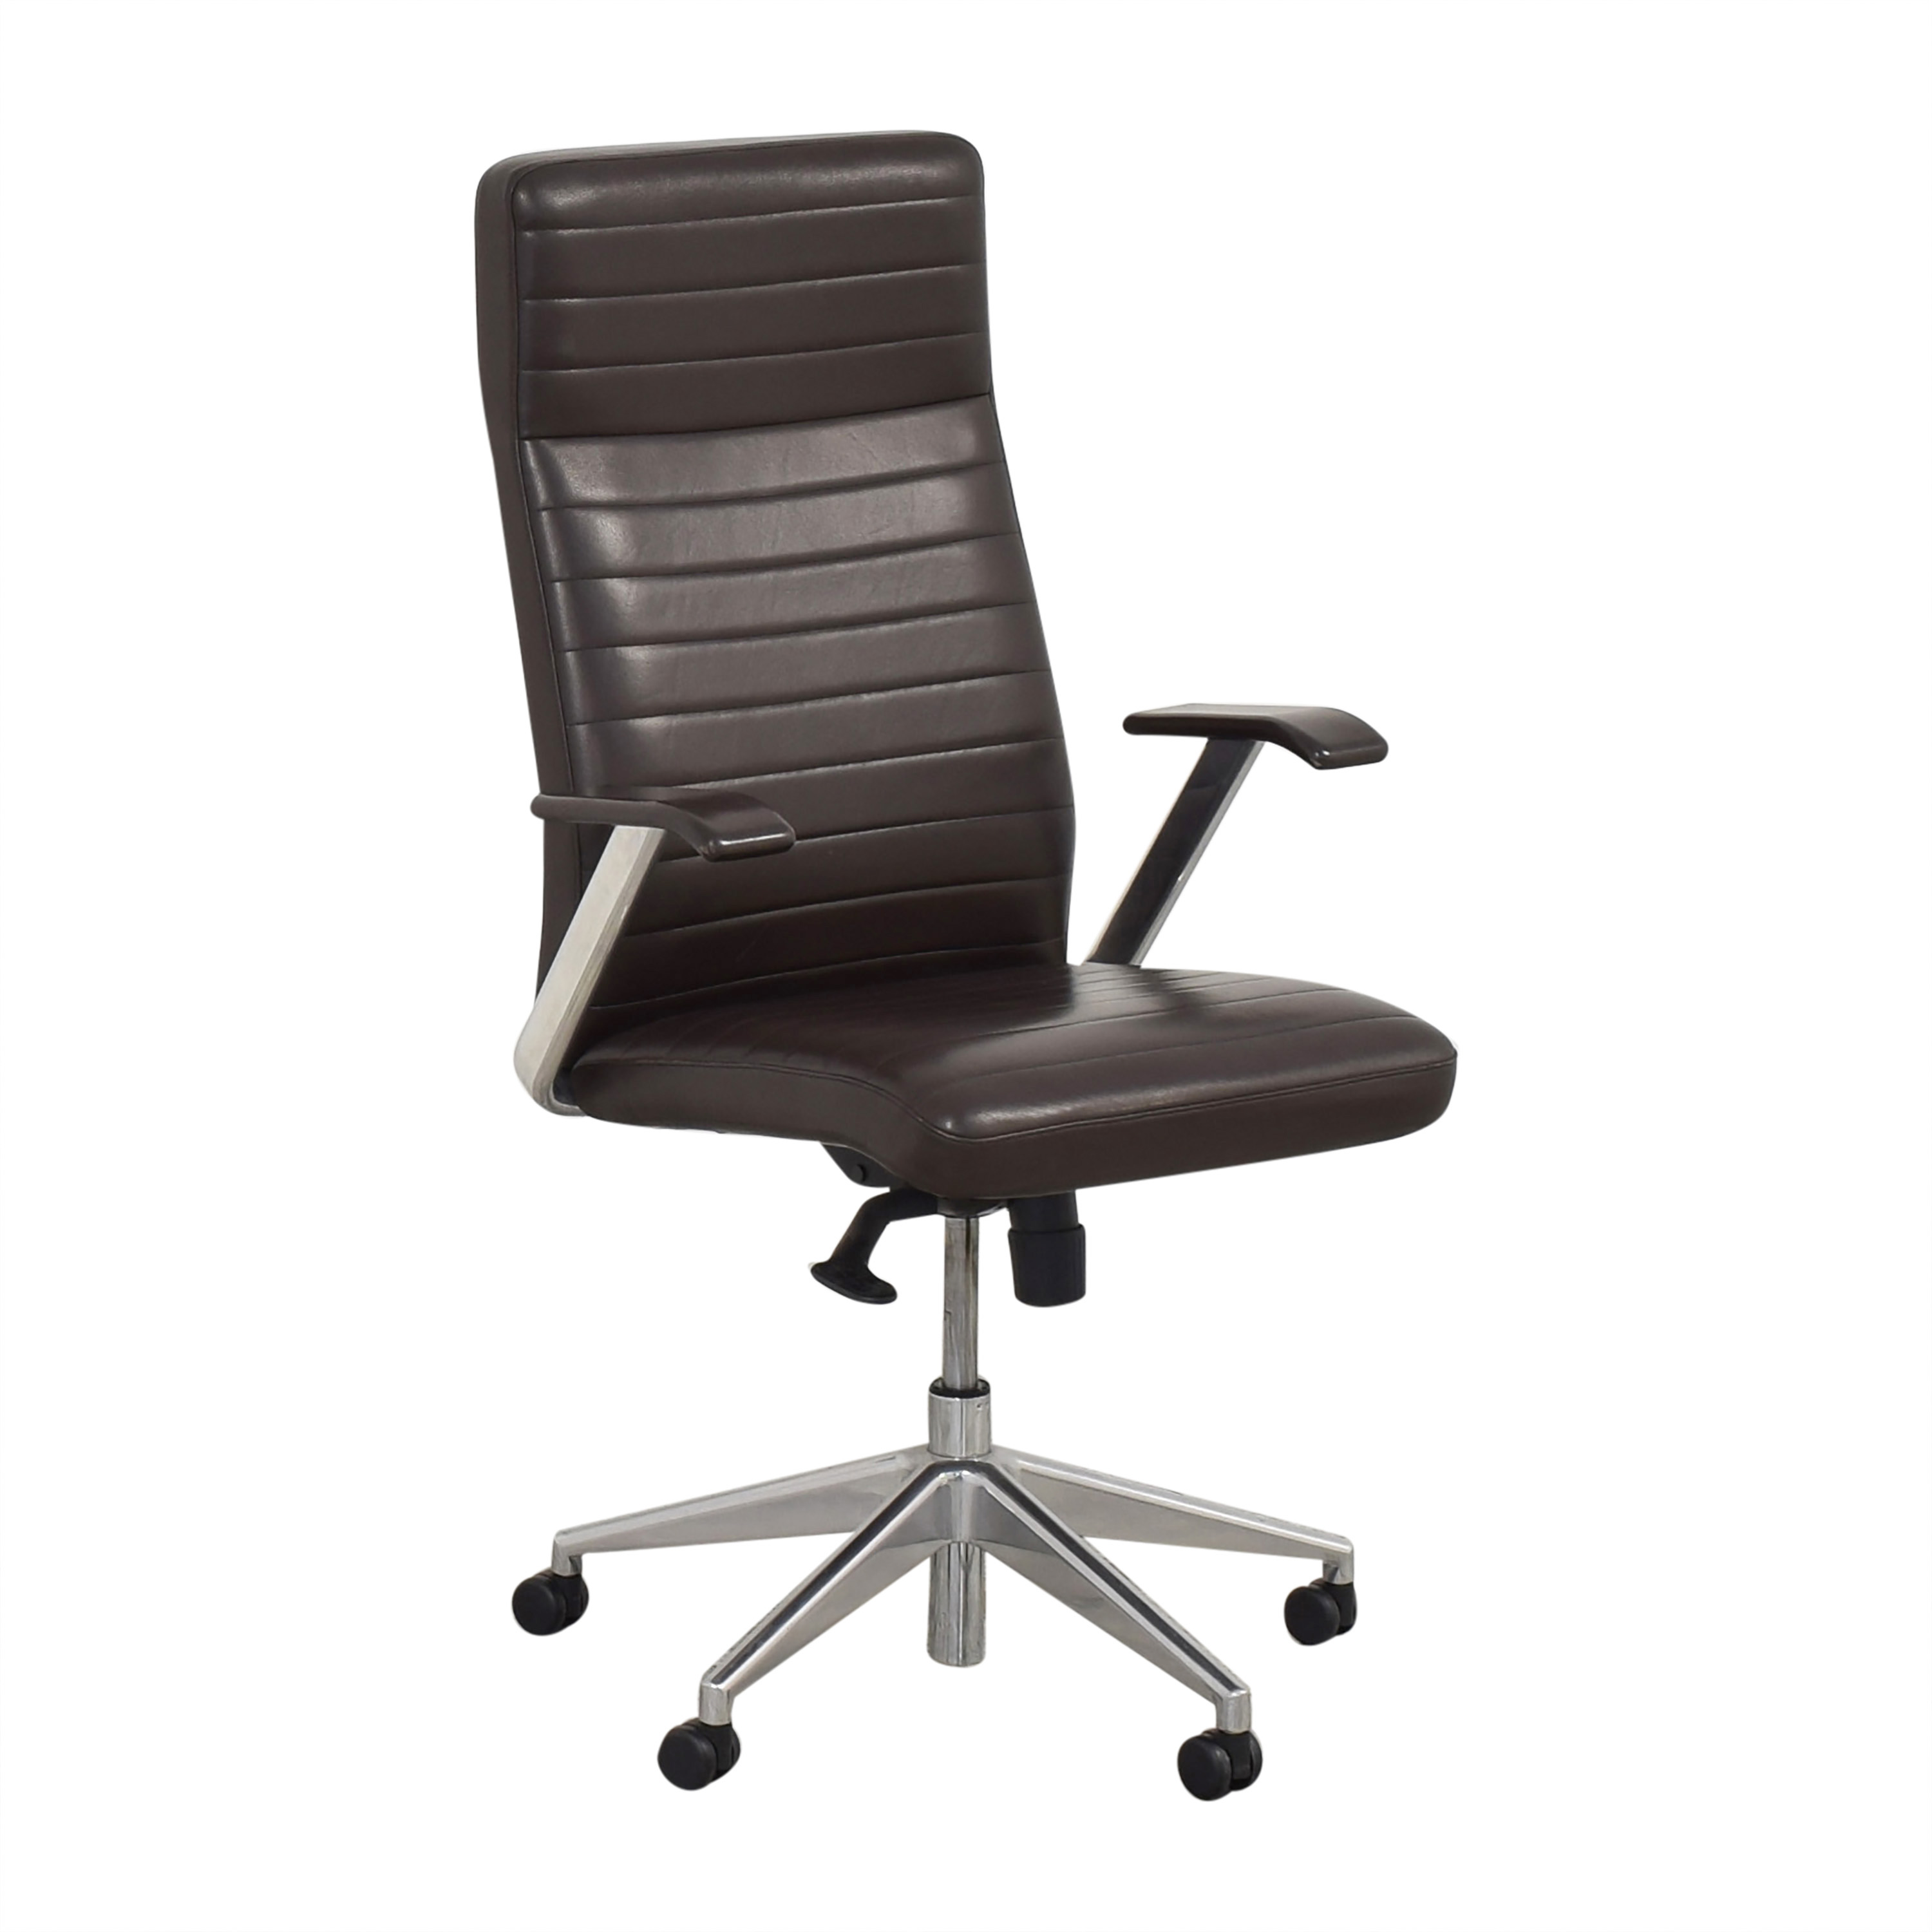 buy HBF HBF Mode High Back Channel Stitched Swivel Chair online